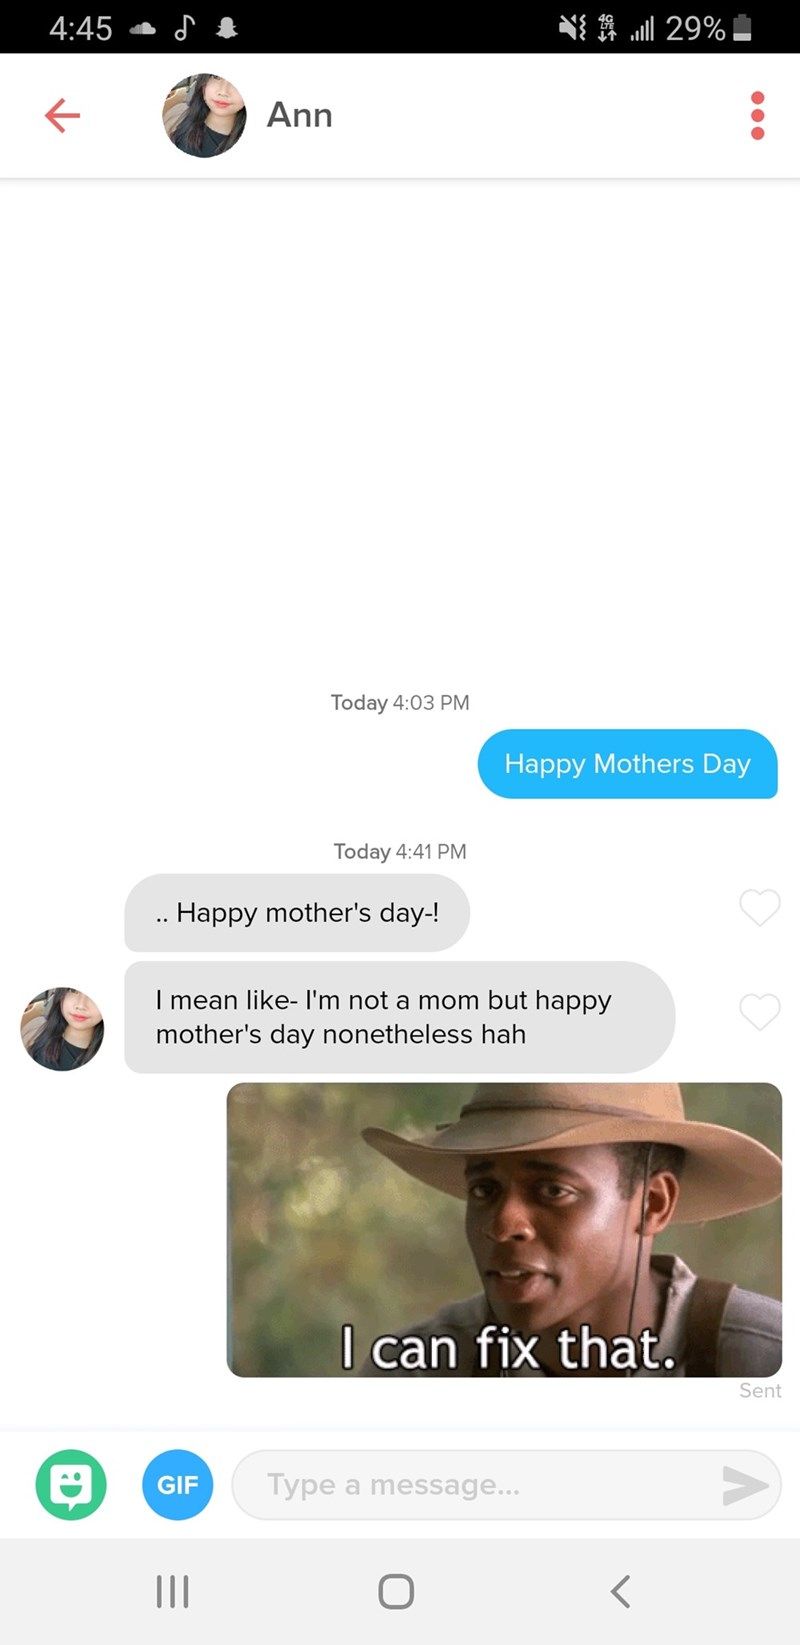 funny tinder - Text - 29% 4:45 Ann Today 4:03 PM Happy Mothers Day Today 4:41 PM .. Happy mother's day-! I mean like- I'm not a mom but happy mother's day nonetheless hah I can fix that. Sent Type a message... GIF